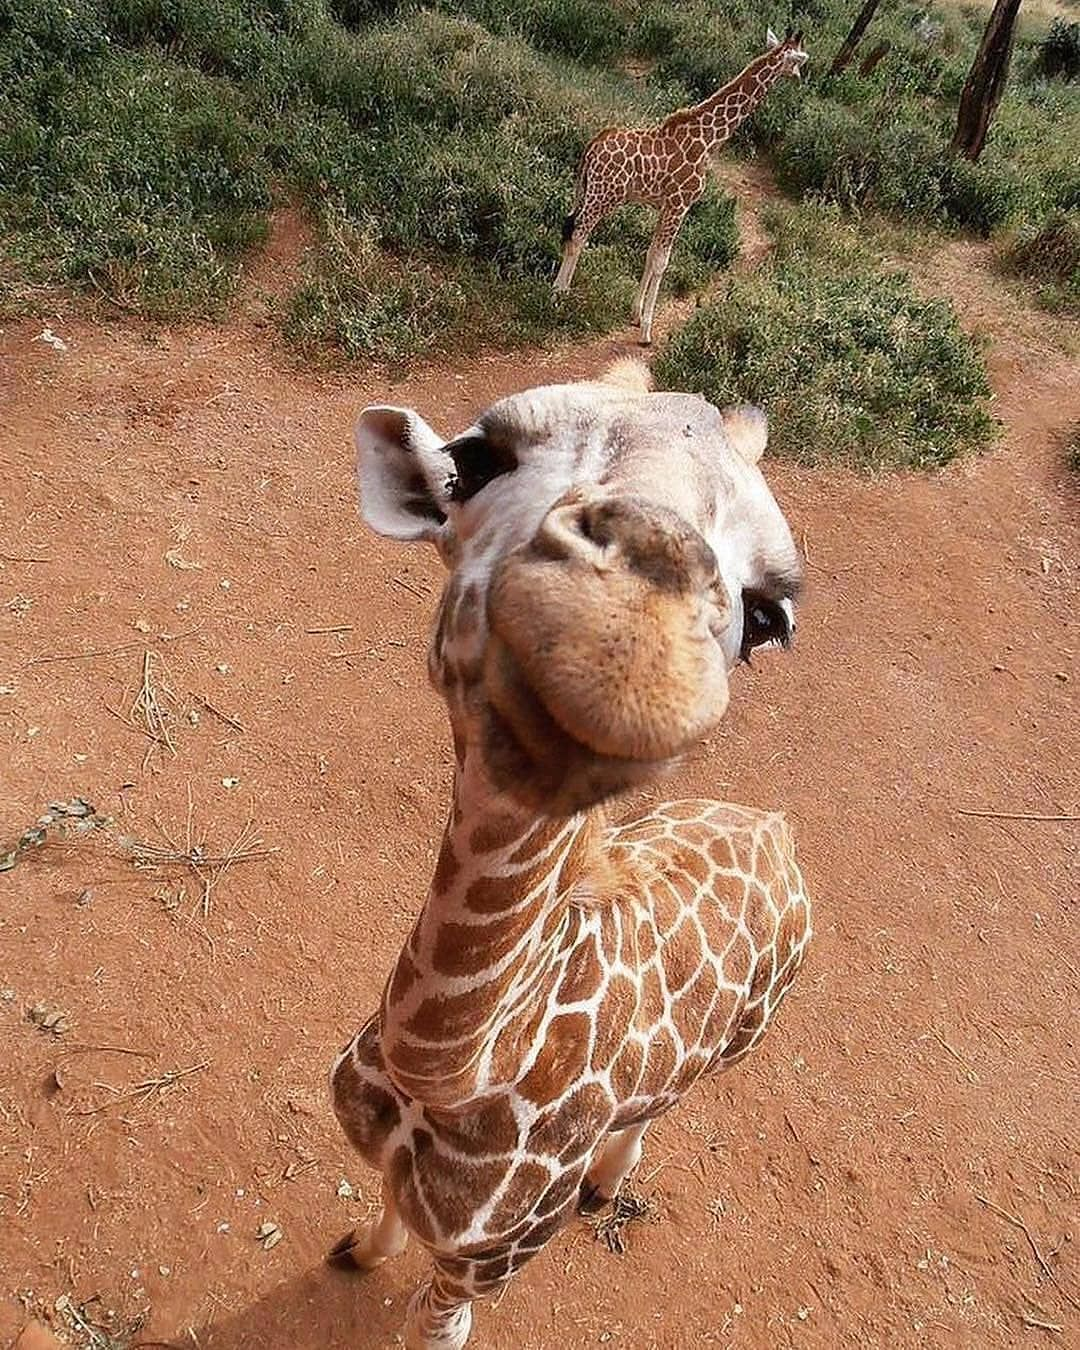 Baby Giraffe How Do You Say Giraffe In Your Language Tag A Friend That Sho Beatiful Places Amazing View Baby Animals Cute Animals Cute Baby Animals